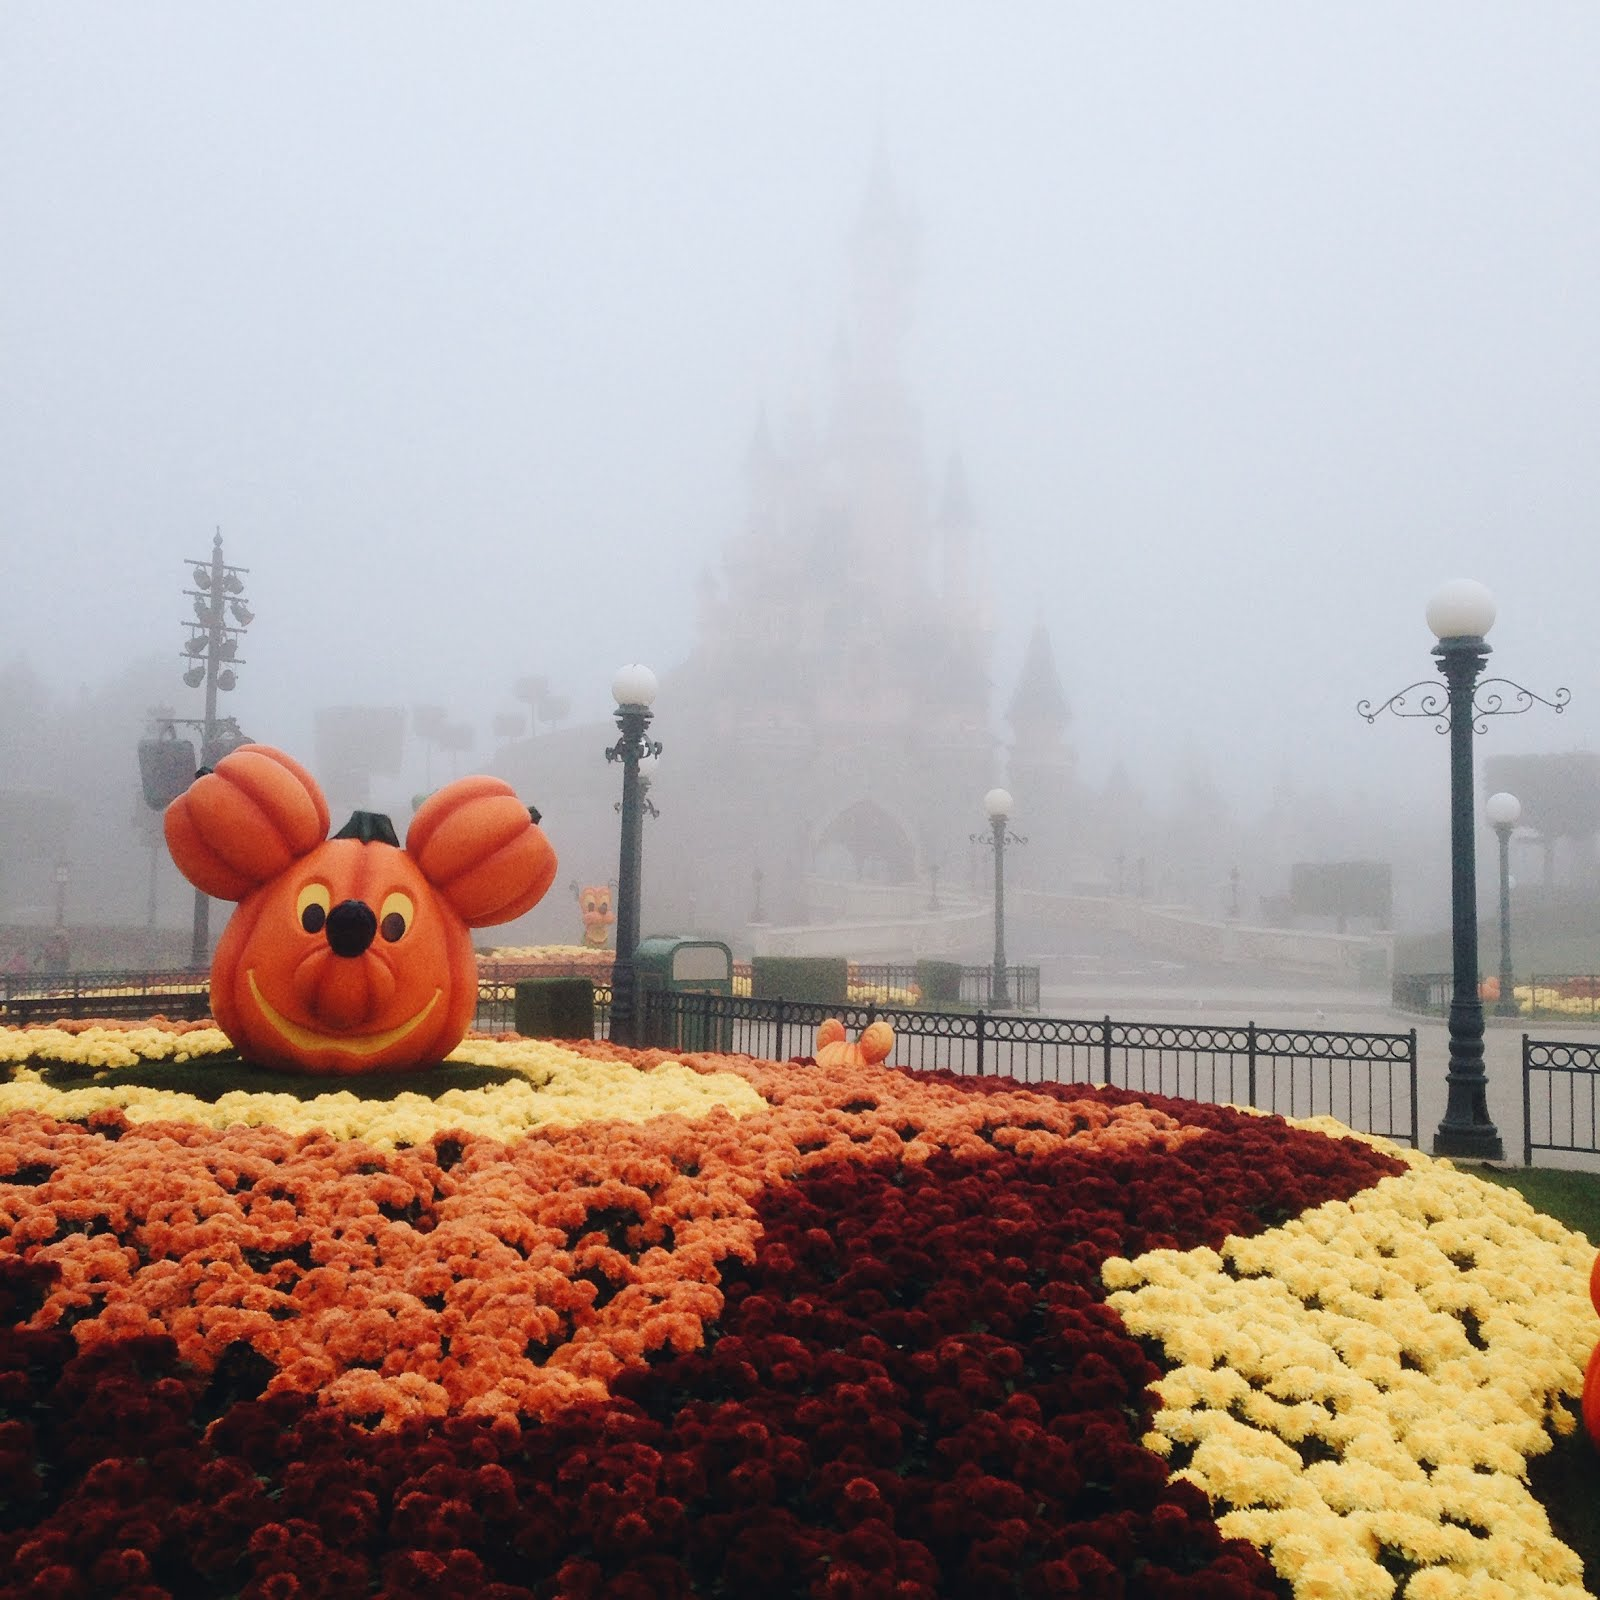 disney land paris at halloween, decorations, orange and yellow flowers, autumn, fall, ravacholle belgium based lifestyle blog